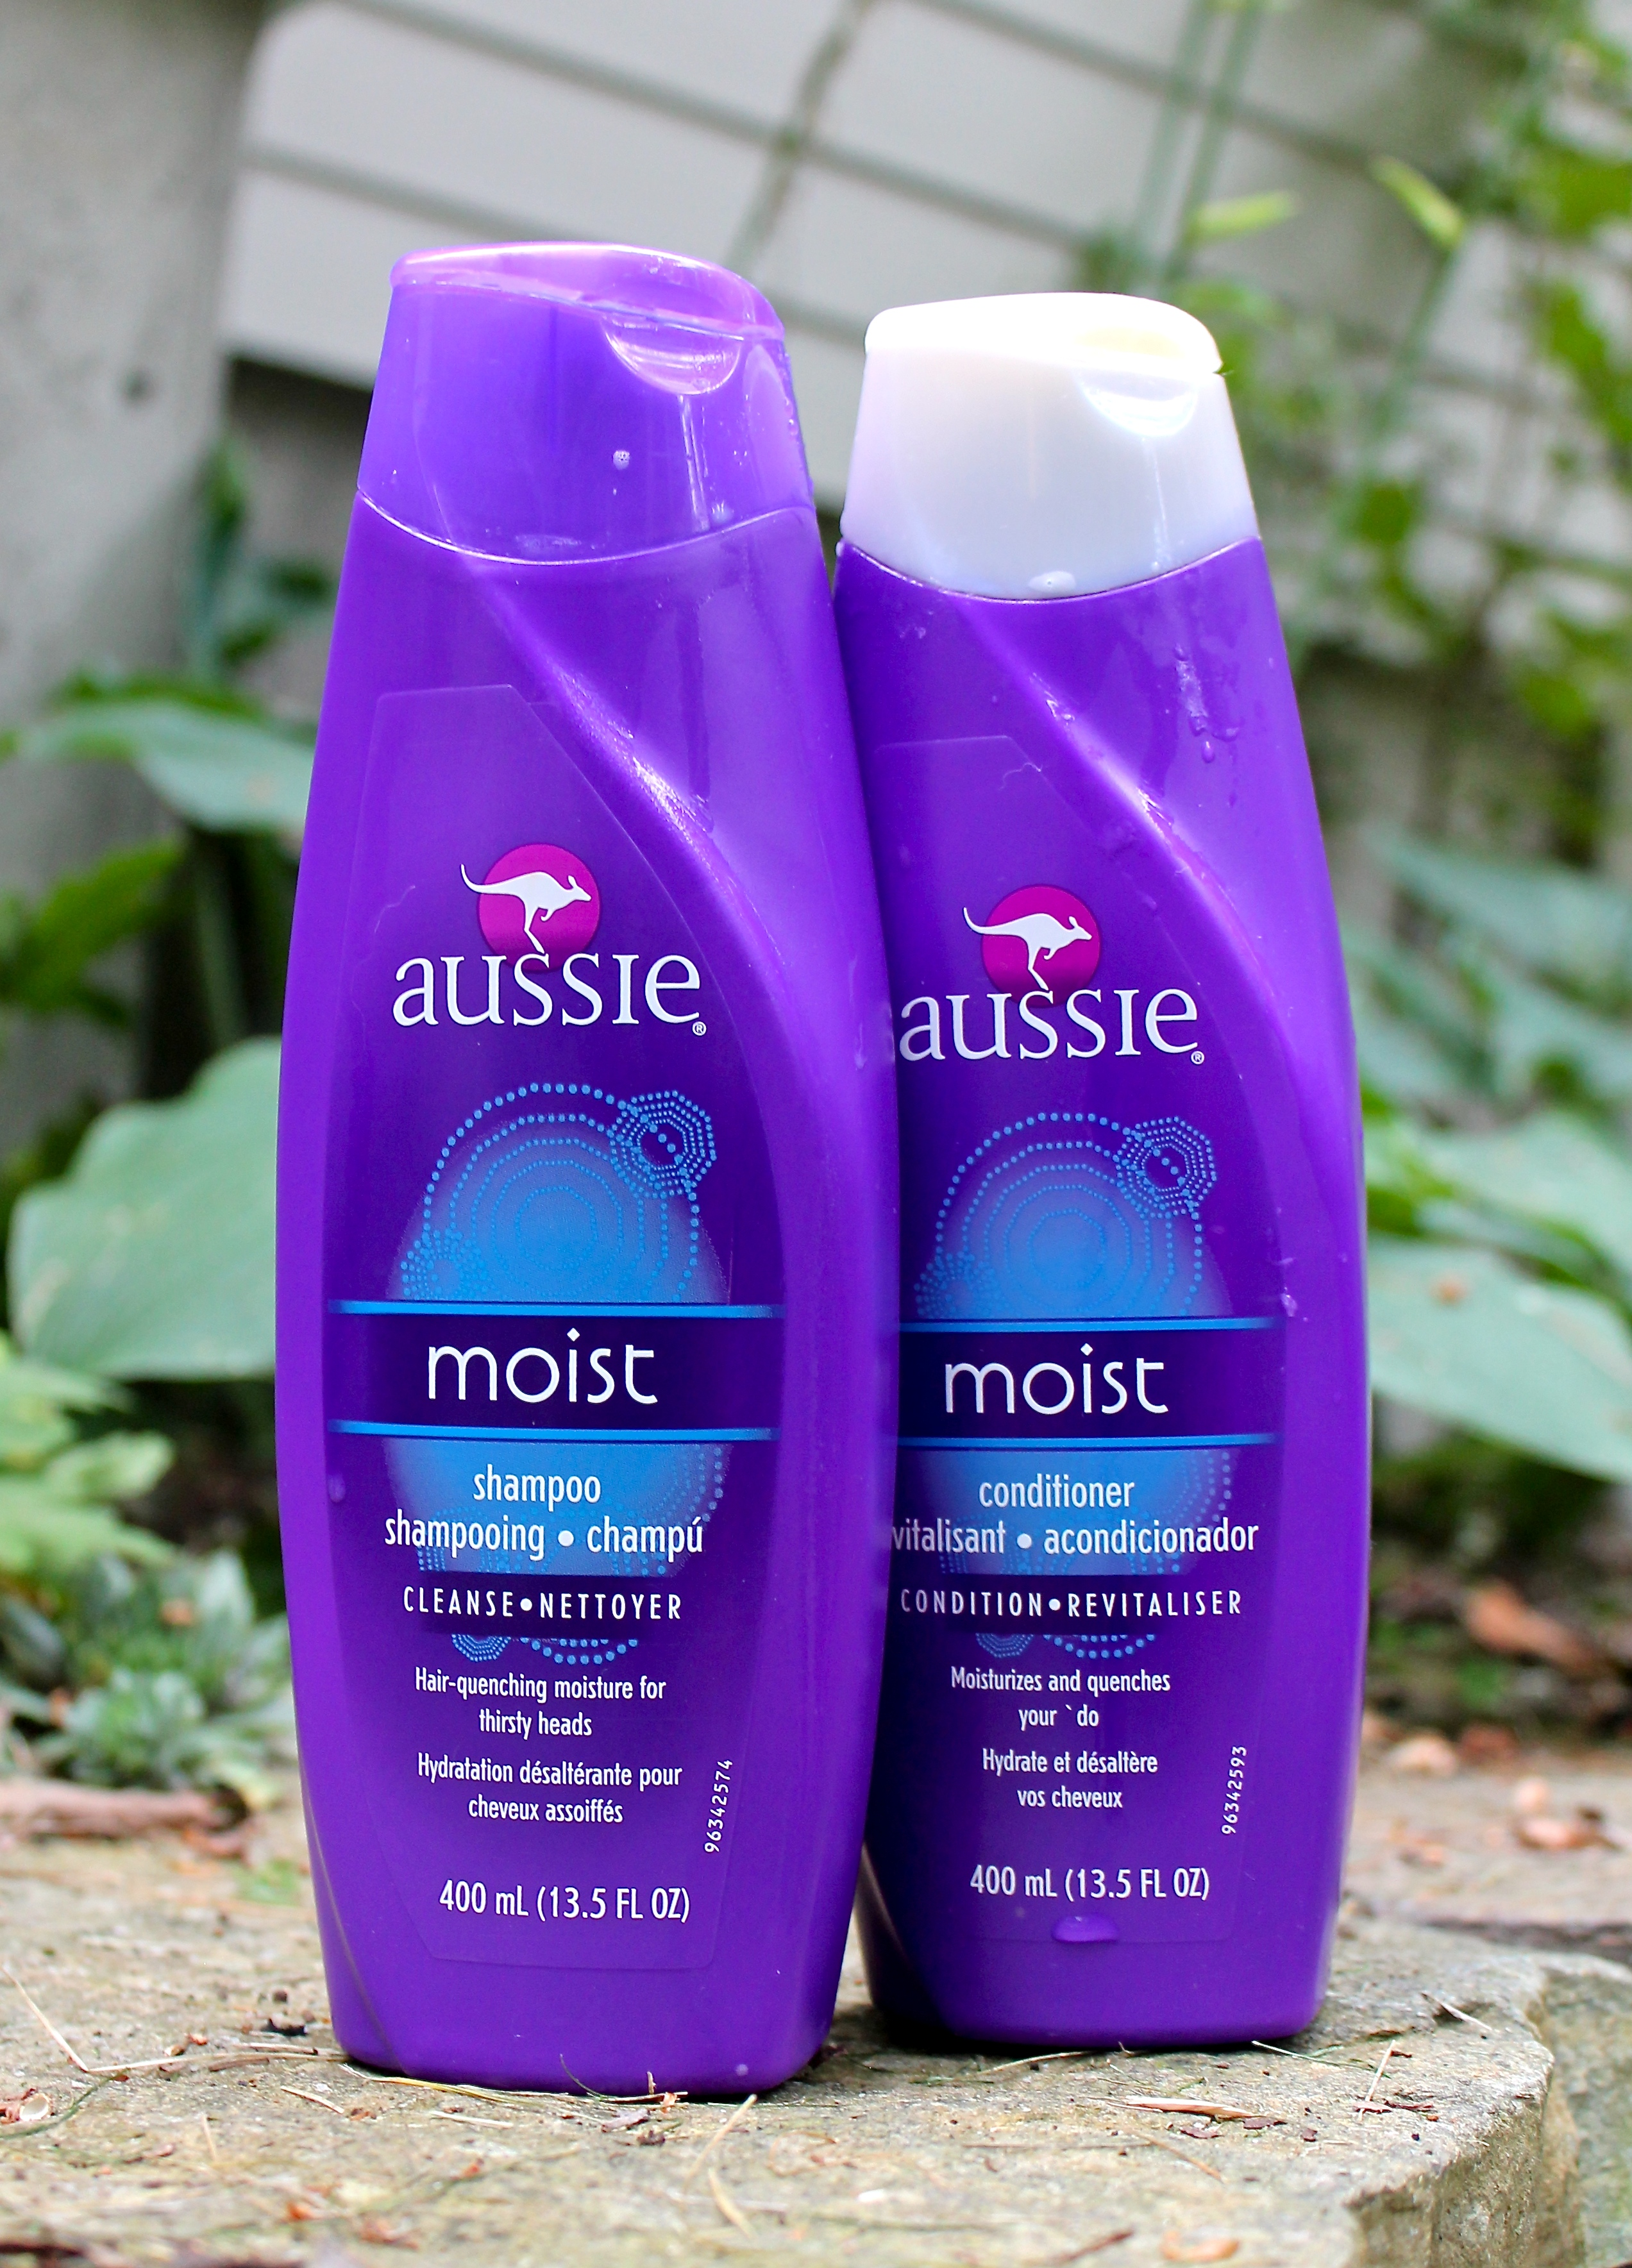 Aussie Shampoo Aussie Moist Shampoo And Conditioner Review Untitled And Unfinished